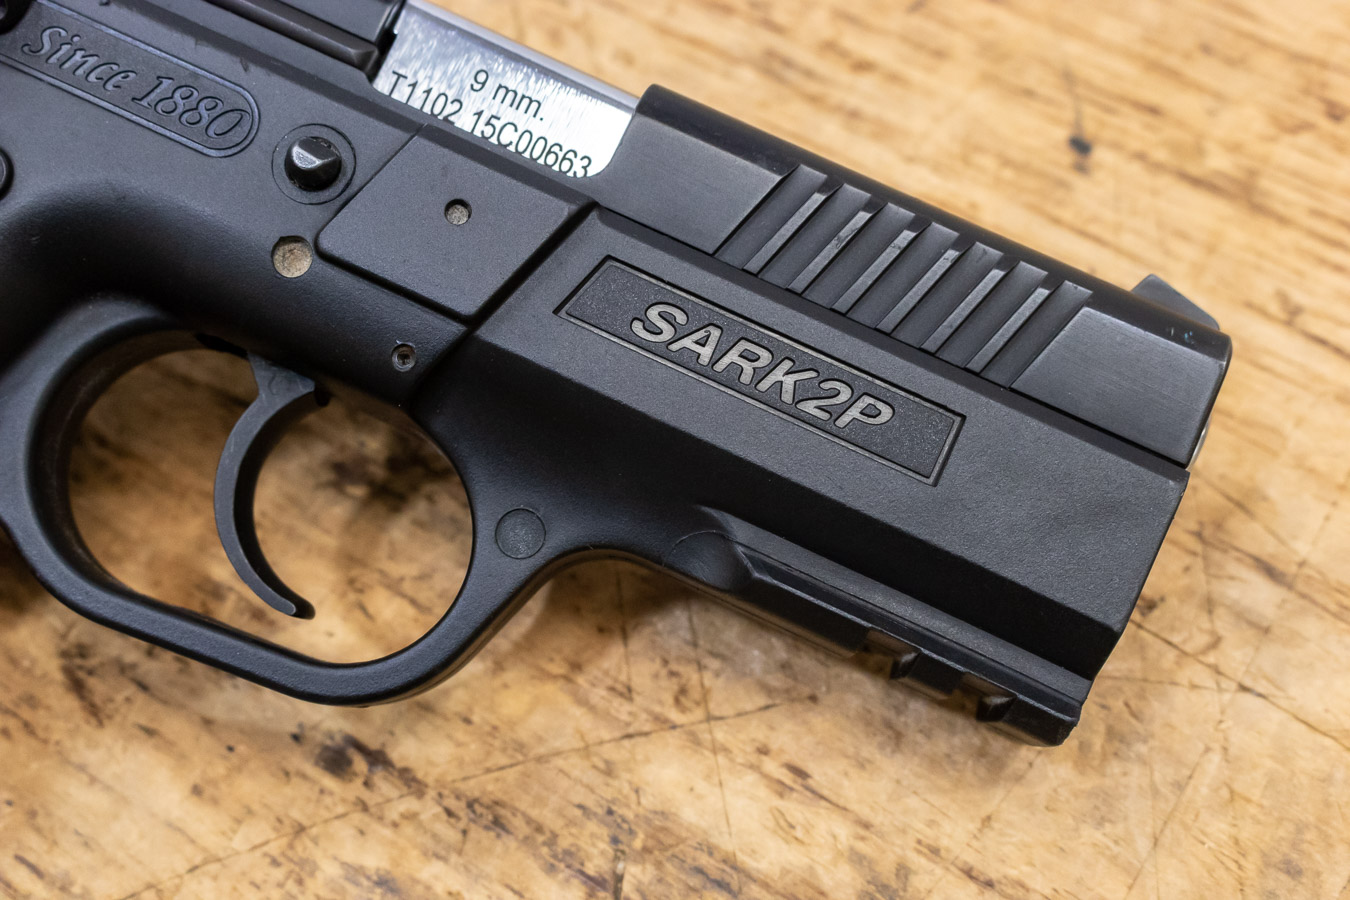 SAR K2P 9mm 15-Round Used Trade-in Pistol with Adjustable Rear Sight